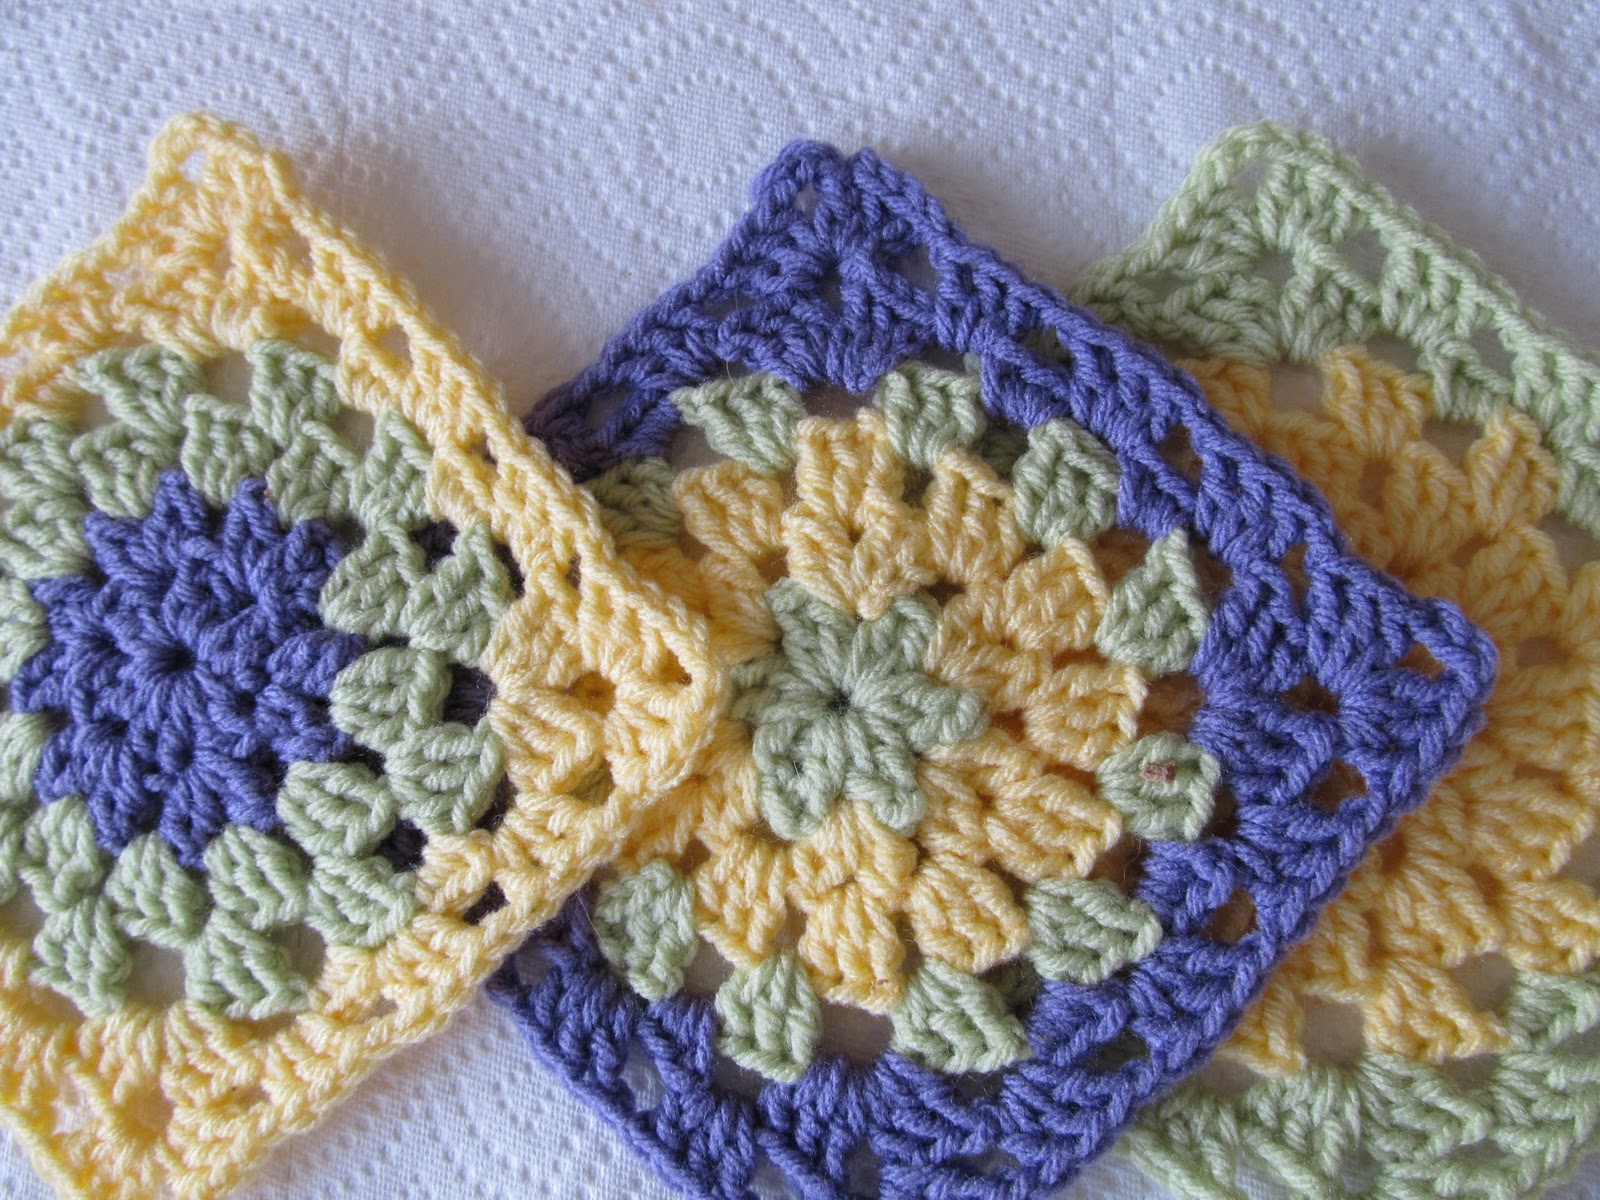 Free Crochet Square Patterns For Your Charity Endeavors